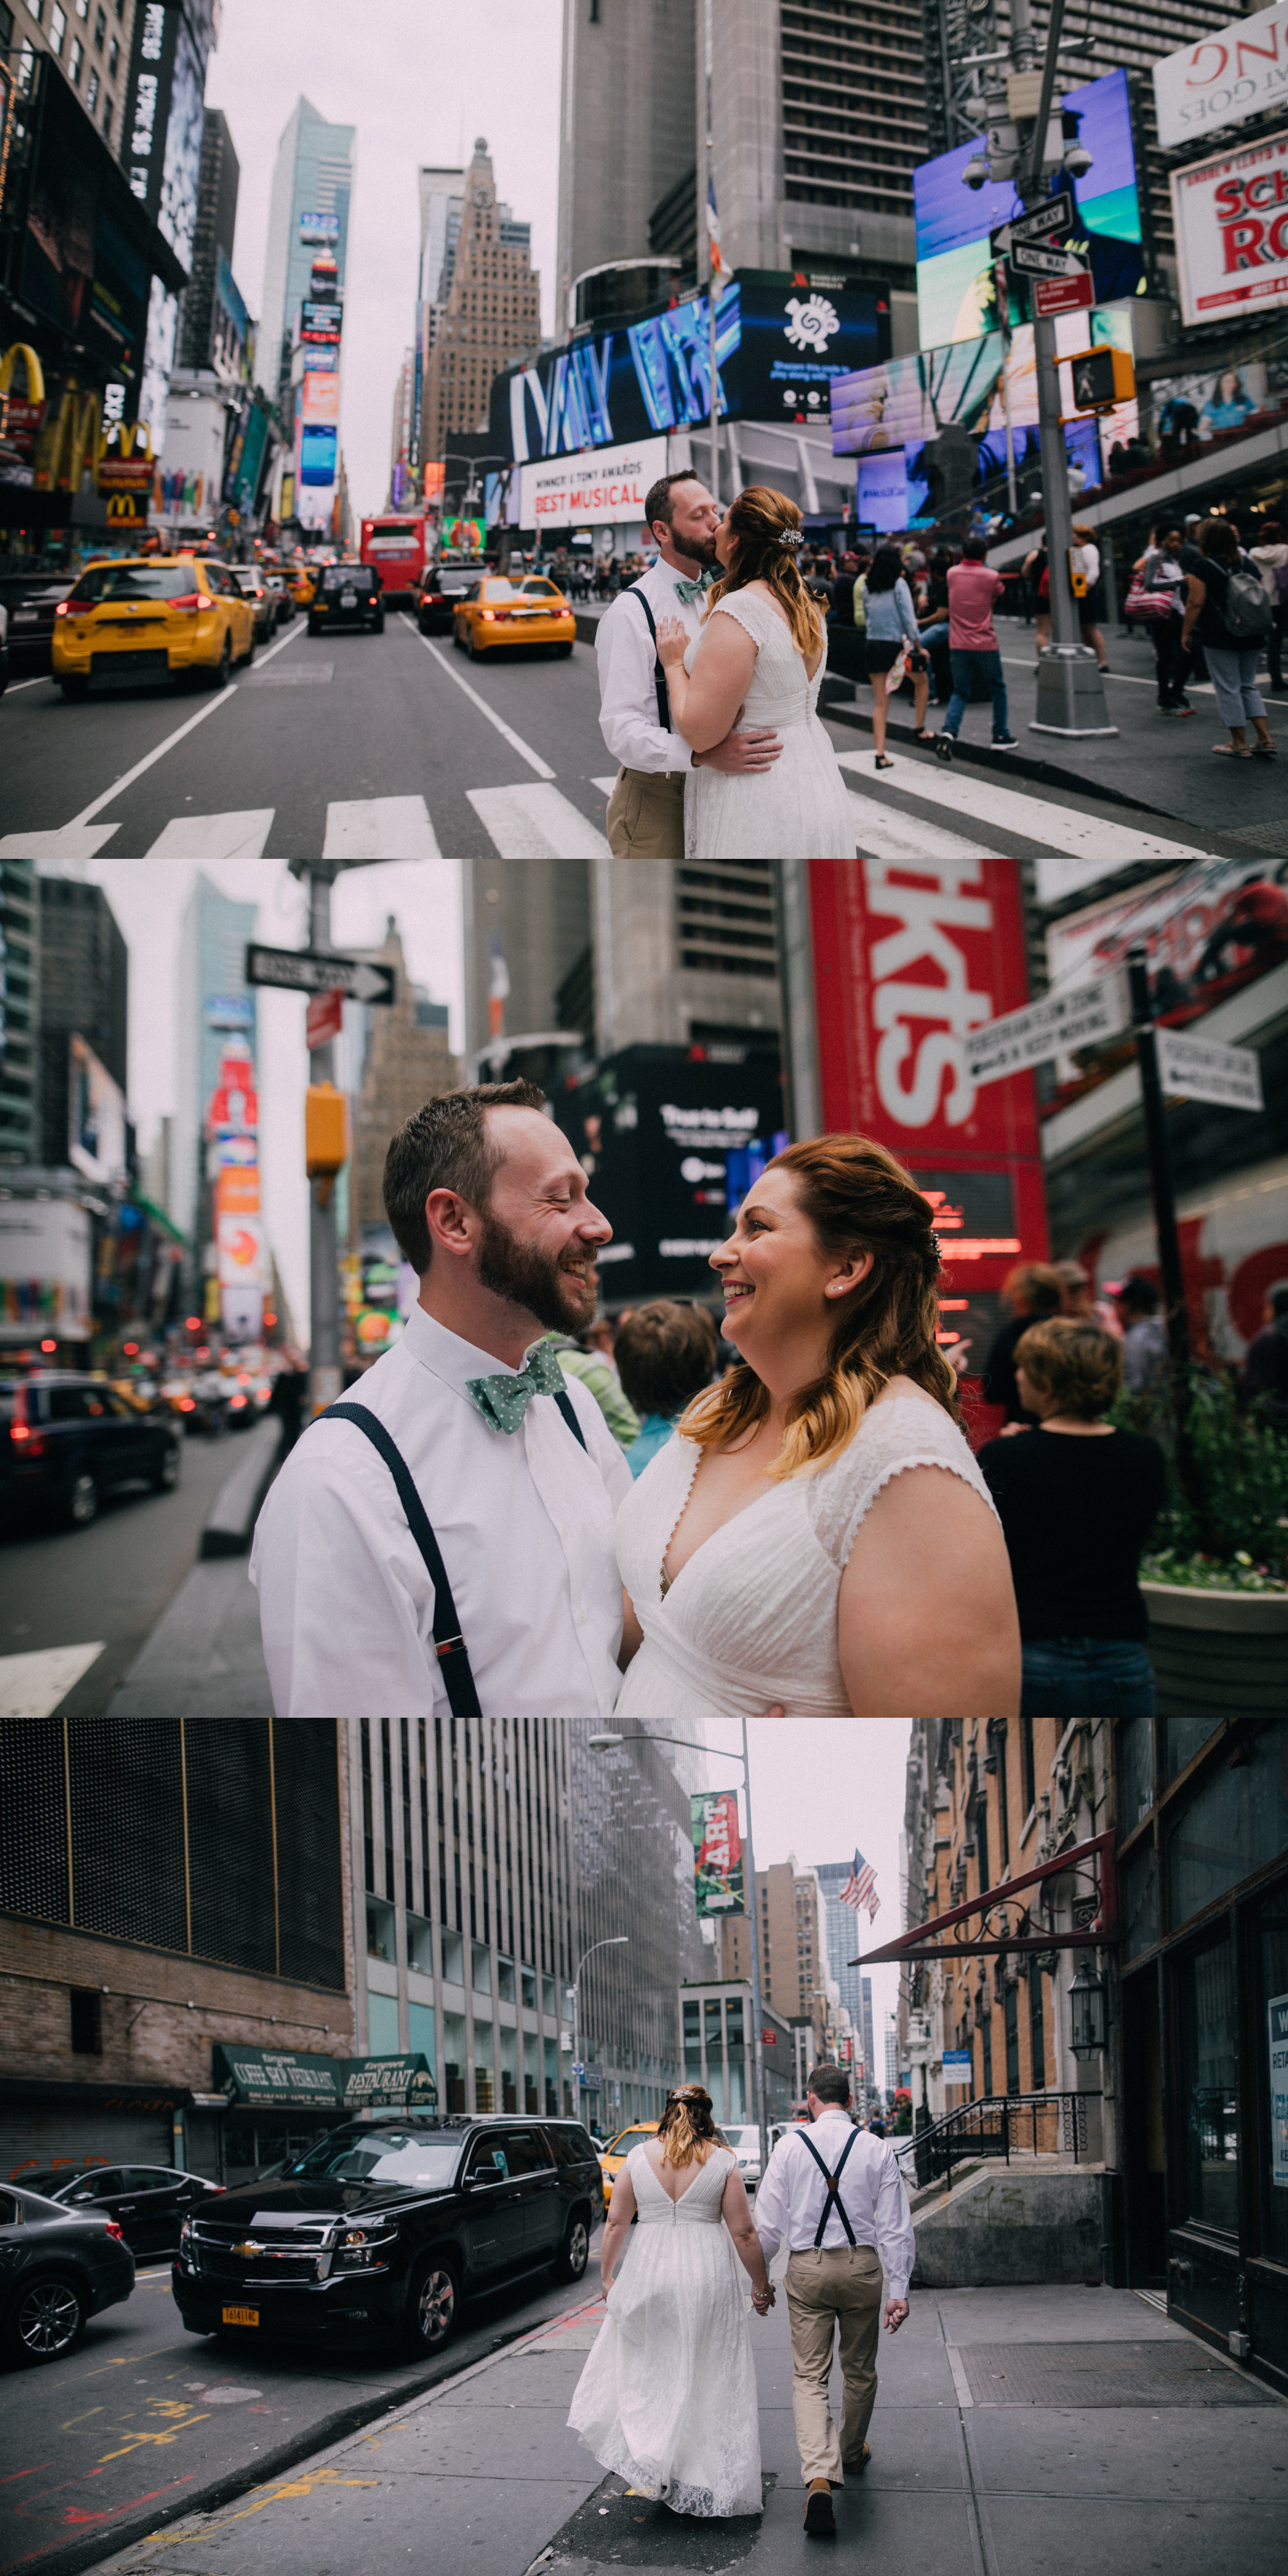 new york city elopement central park courthouse wedding photographer-12.jpg